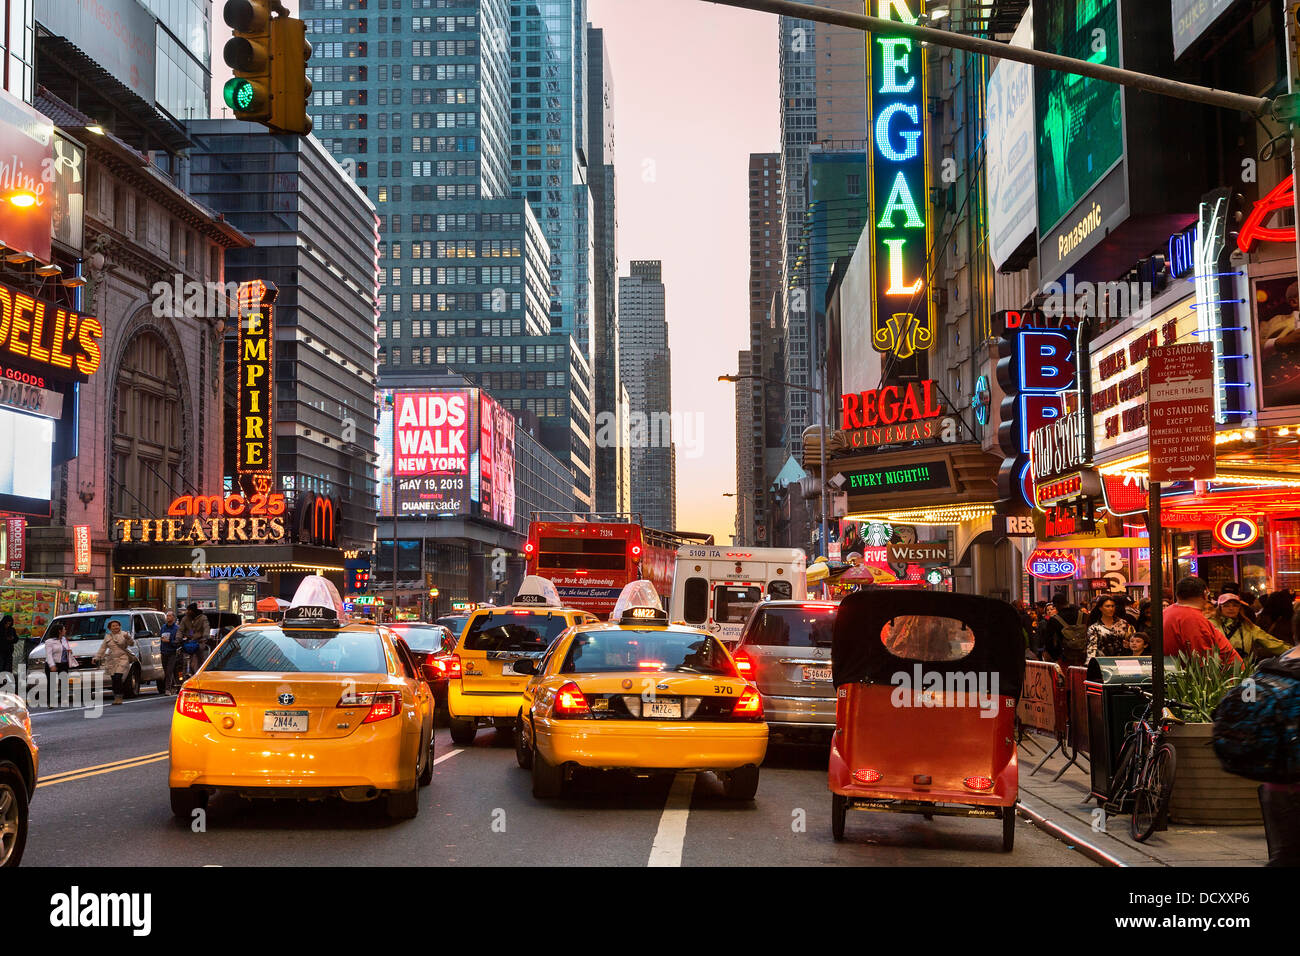 New York City, Traffic on 42nd Street - Stock Image